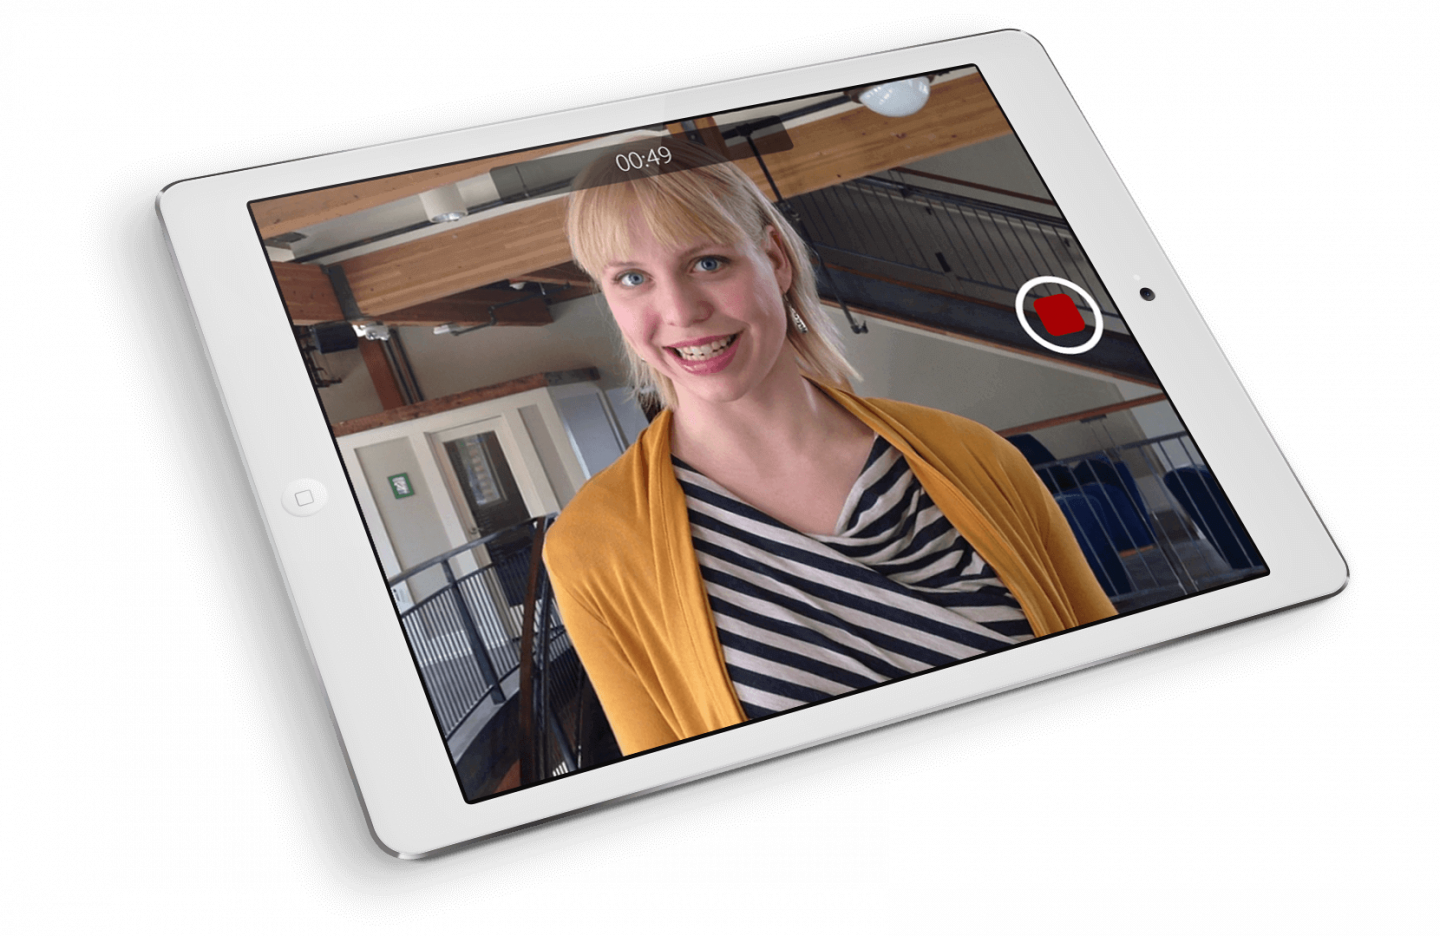 Panopto's live streaming software can webcast to mobile devices